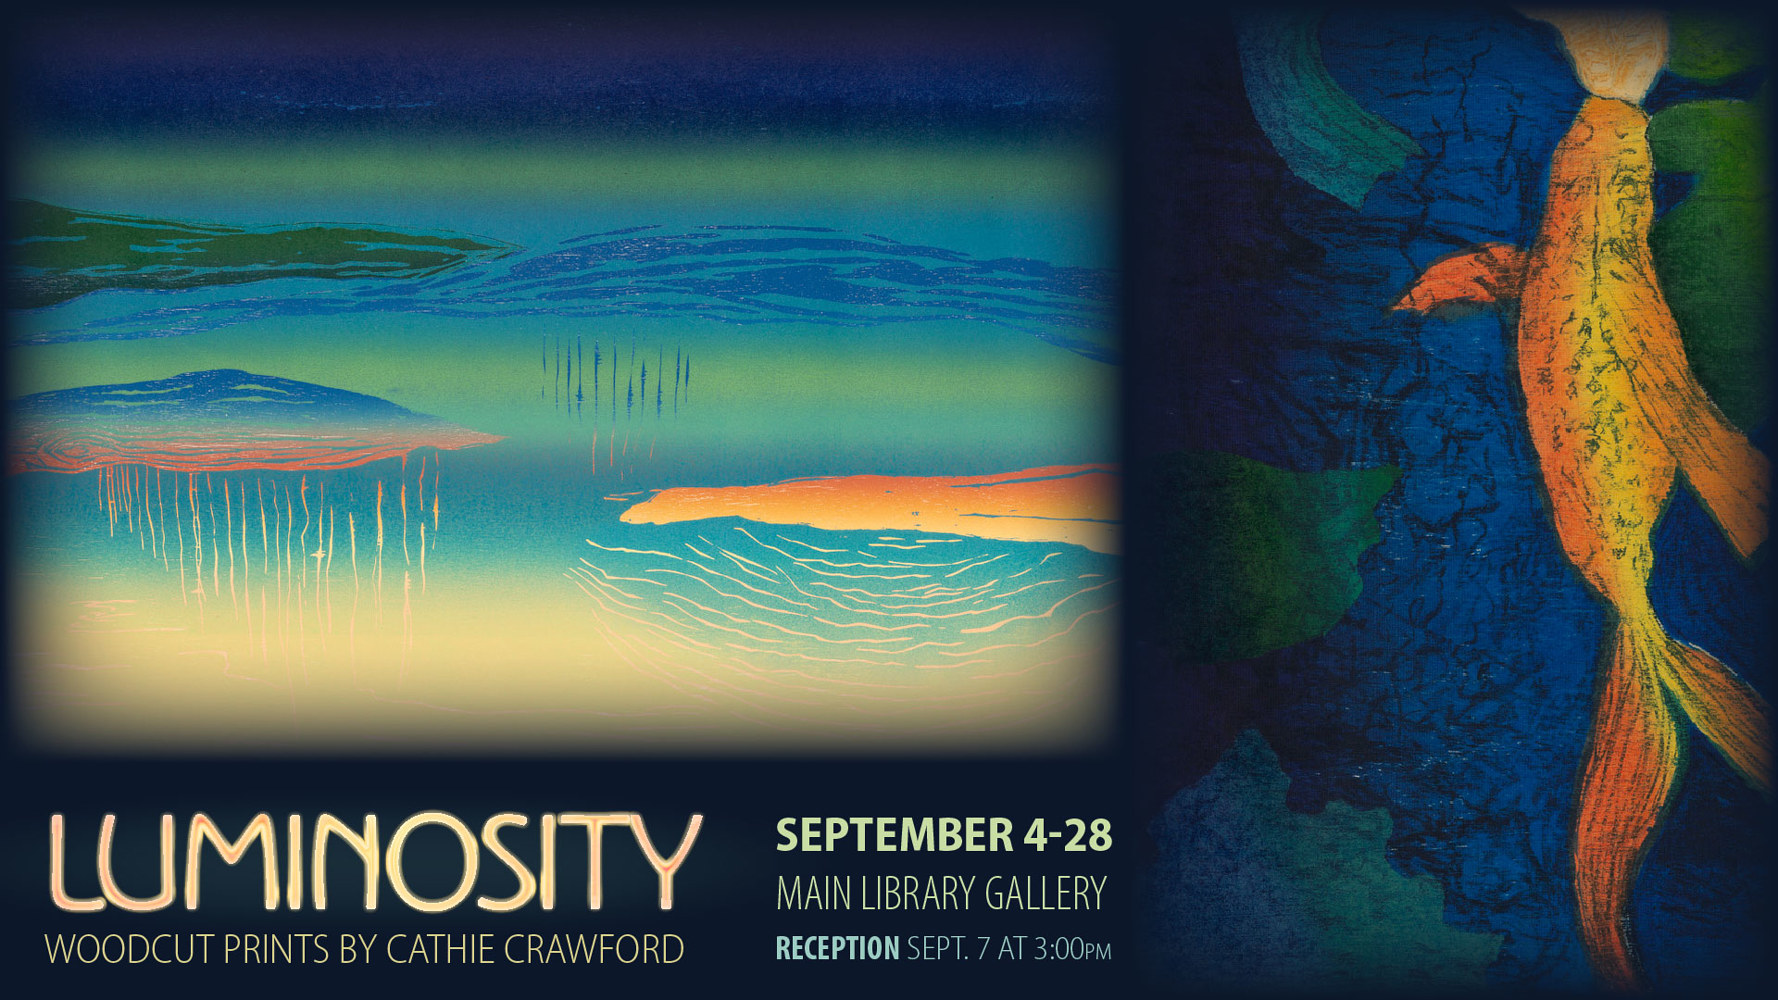 Luminosity Exhibition  by Cathie Crawford